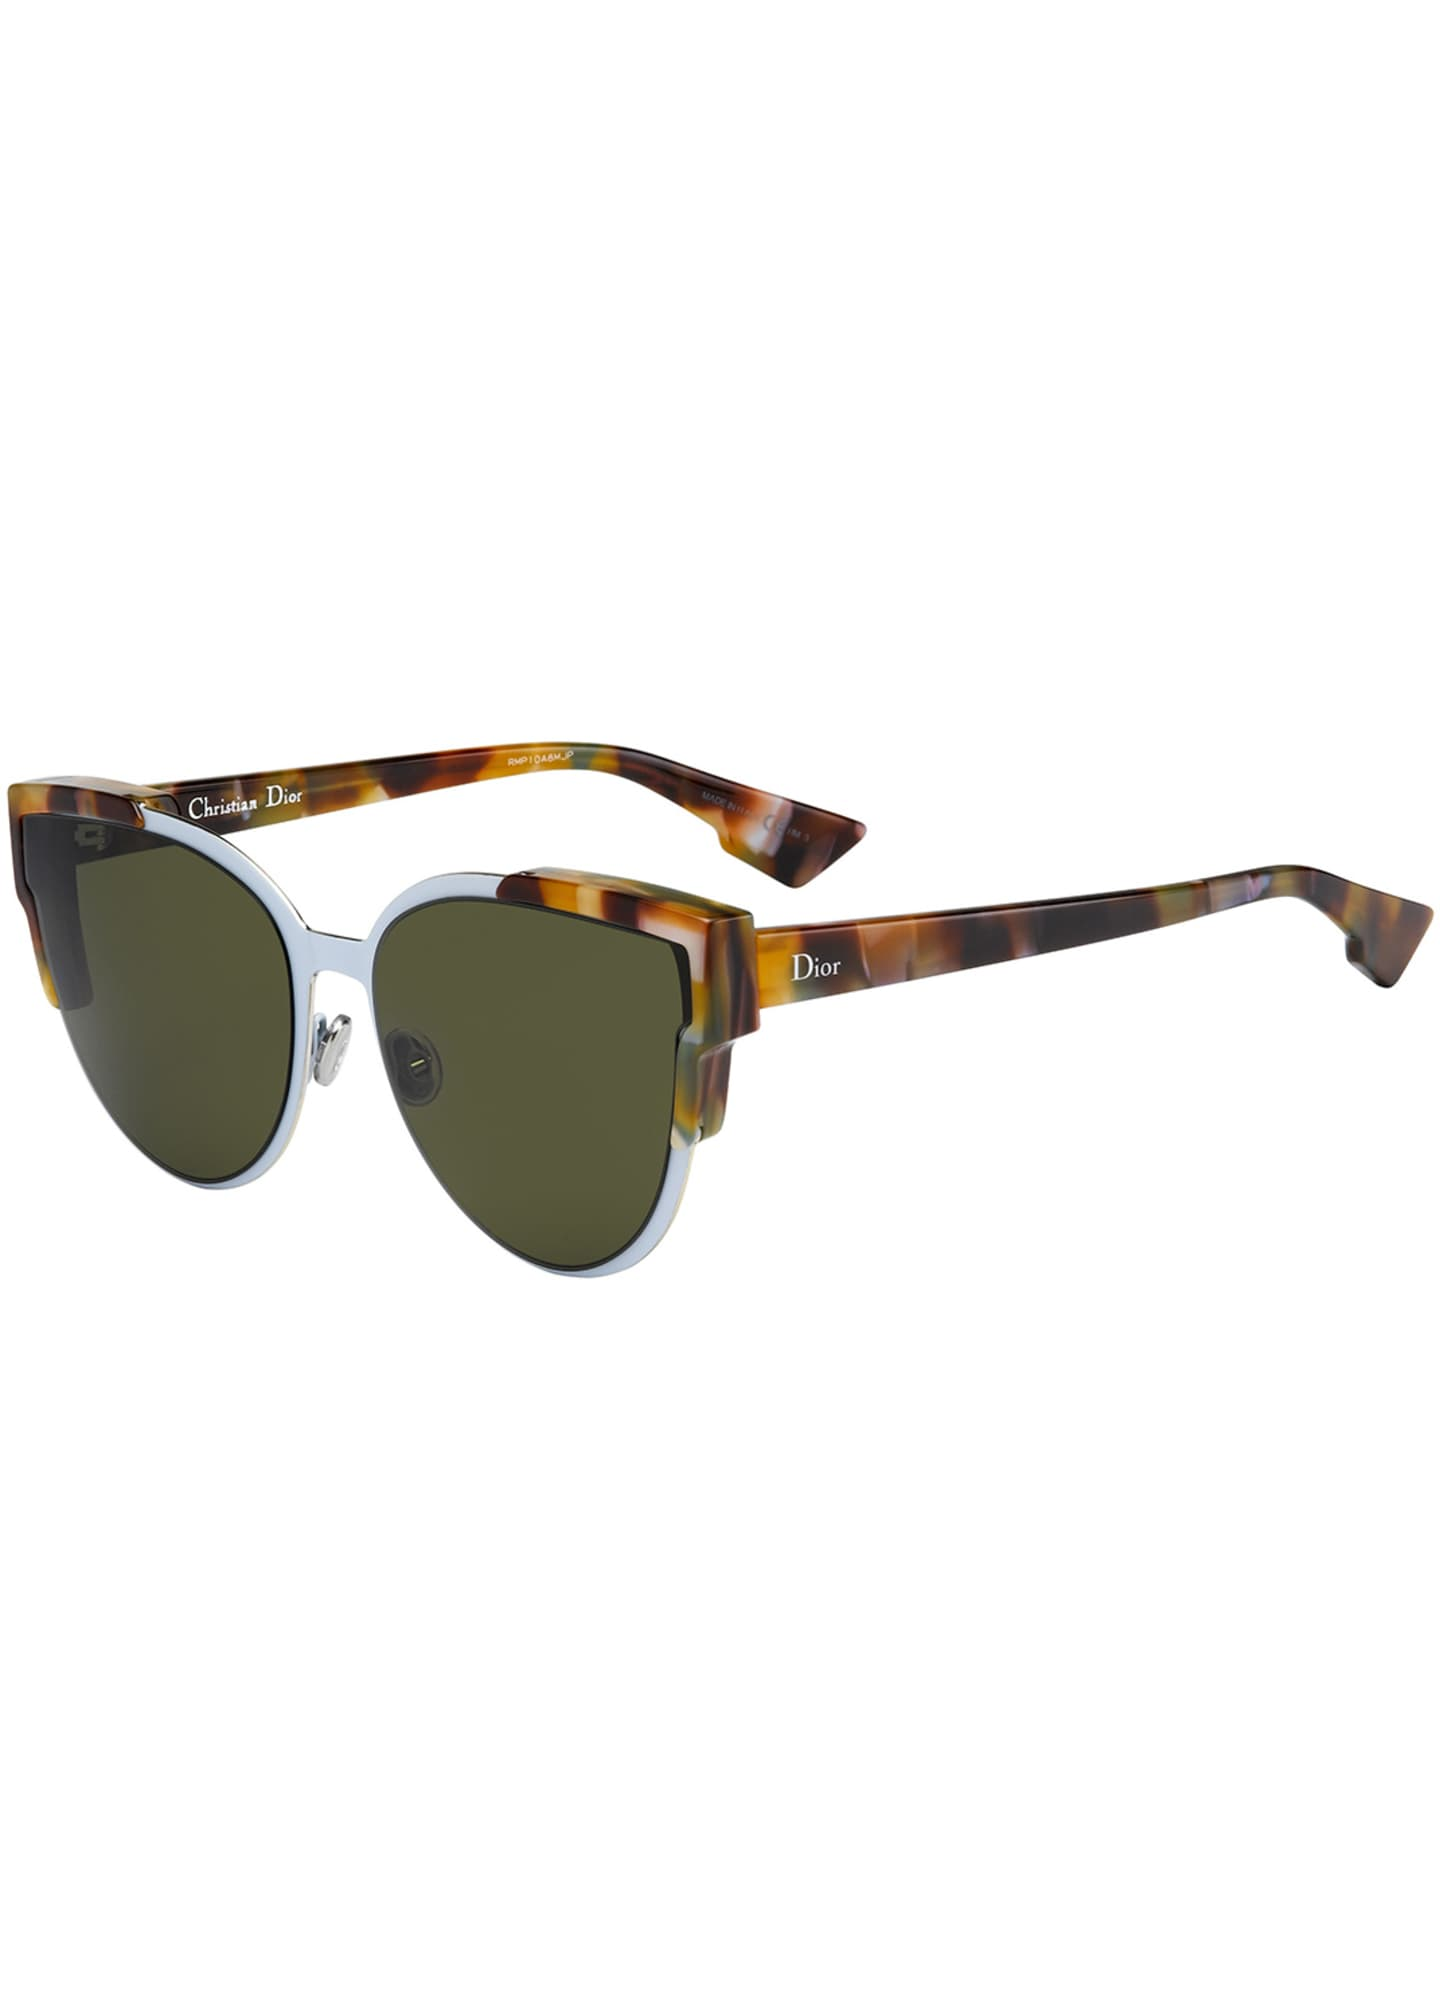 Dior Wildly Dior Cat-Eye Sunglasses, Havana/Light Blue